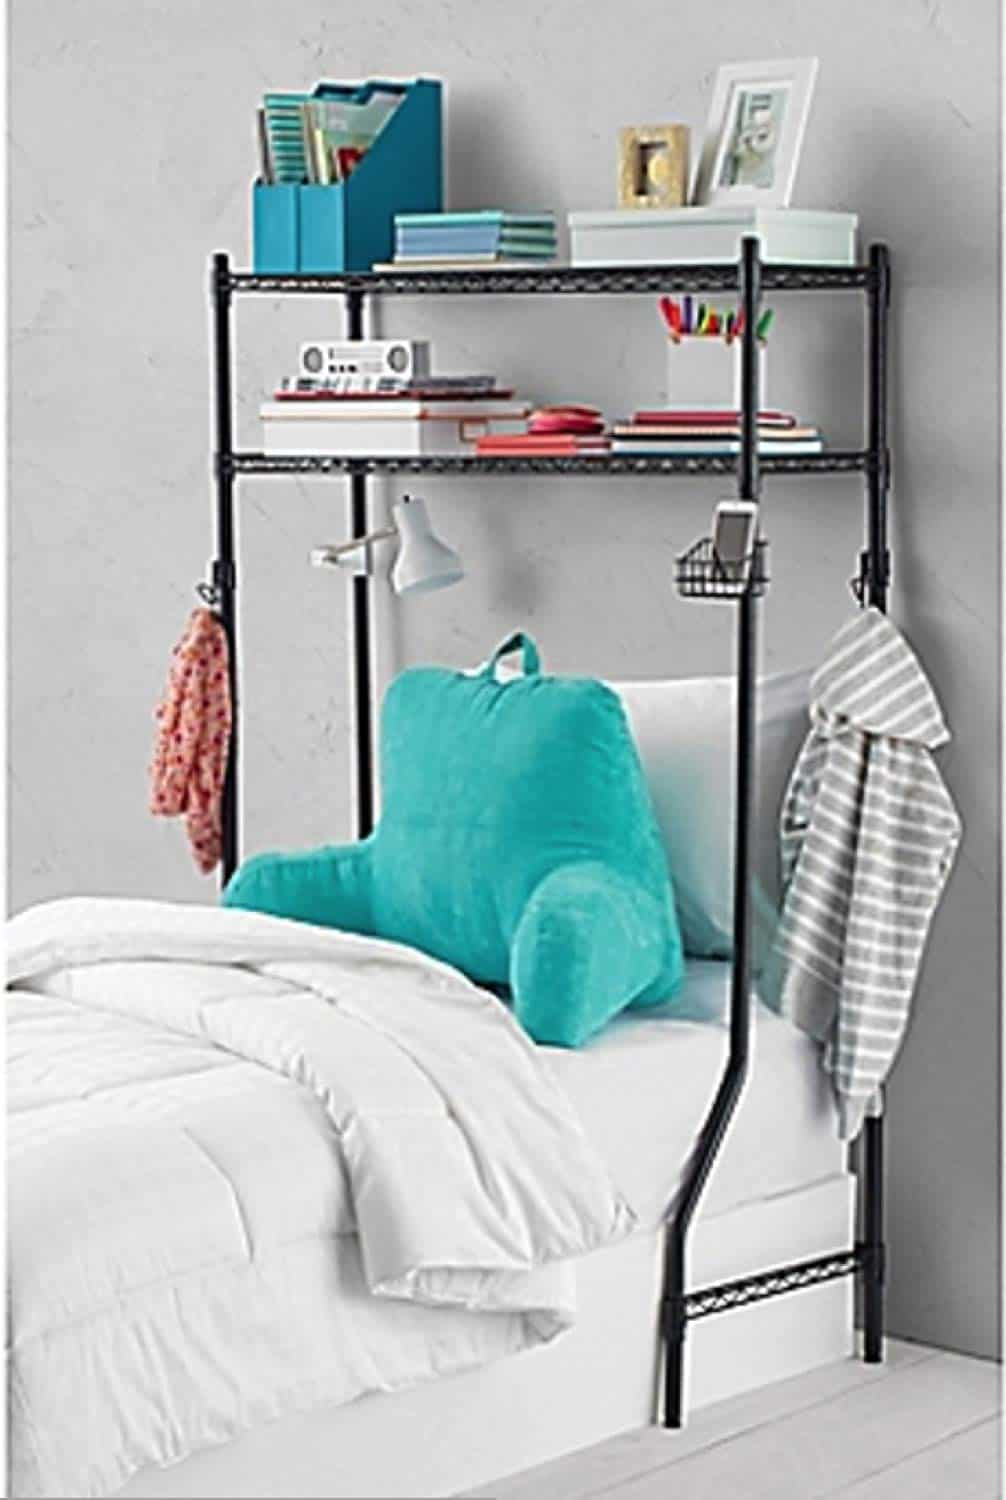 Dorm room storage ideas 12 brilliant dorm room storage - Dorm underbed storage ideas ...